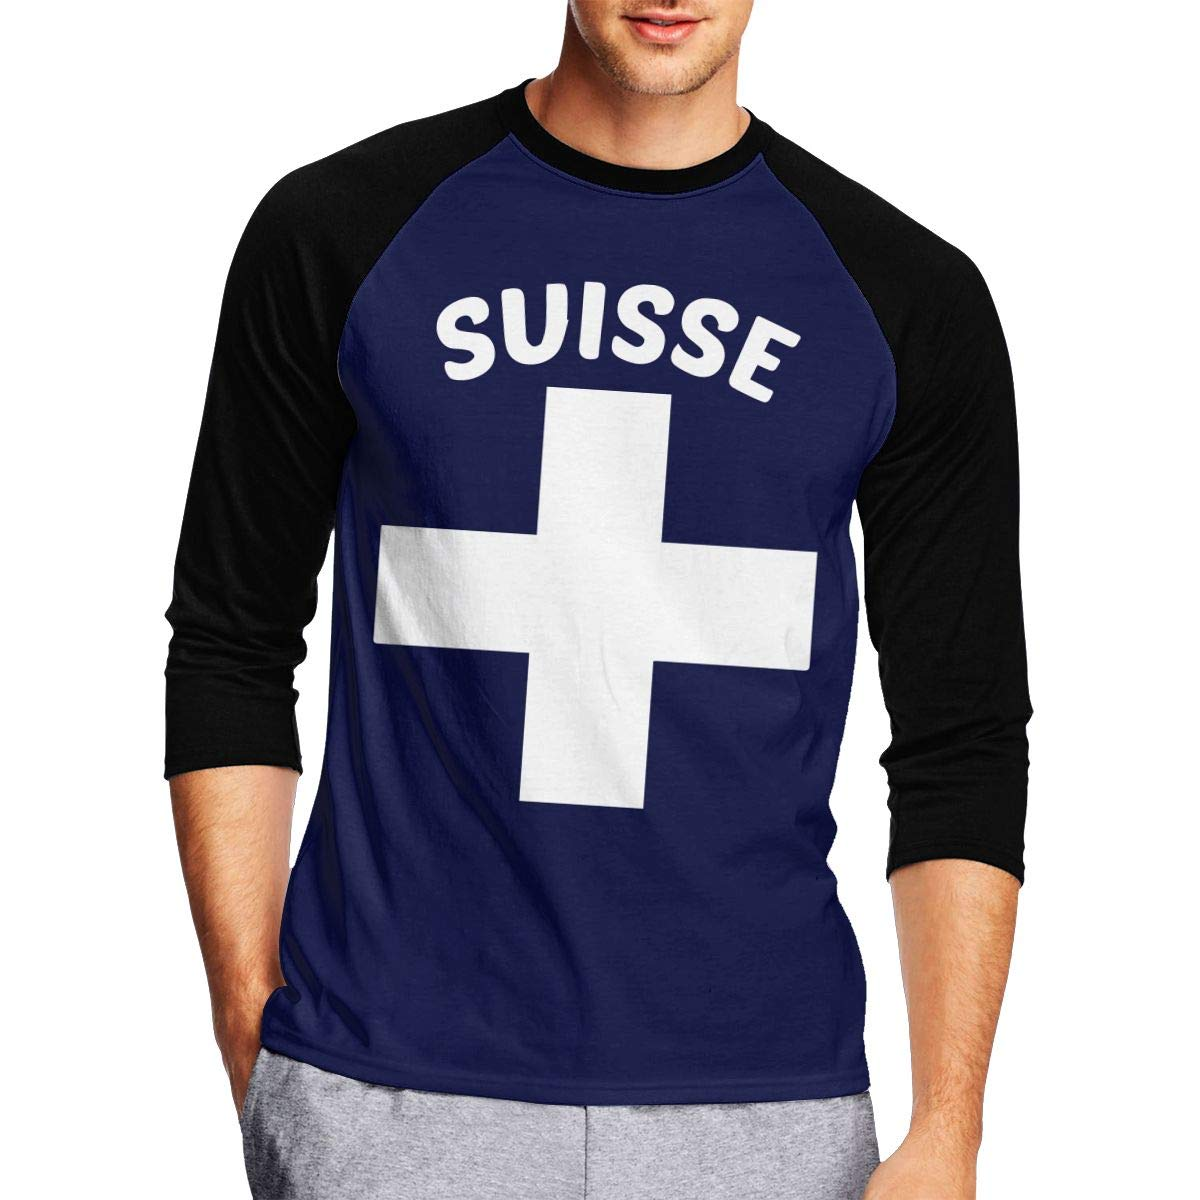 DFGHJZH-L Swiss Pride Mens Fashion Adult Long-Sleeved T Shirt